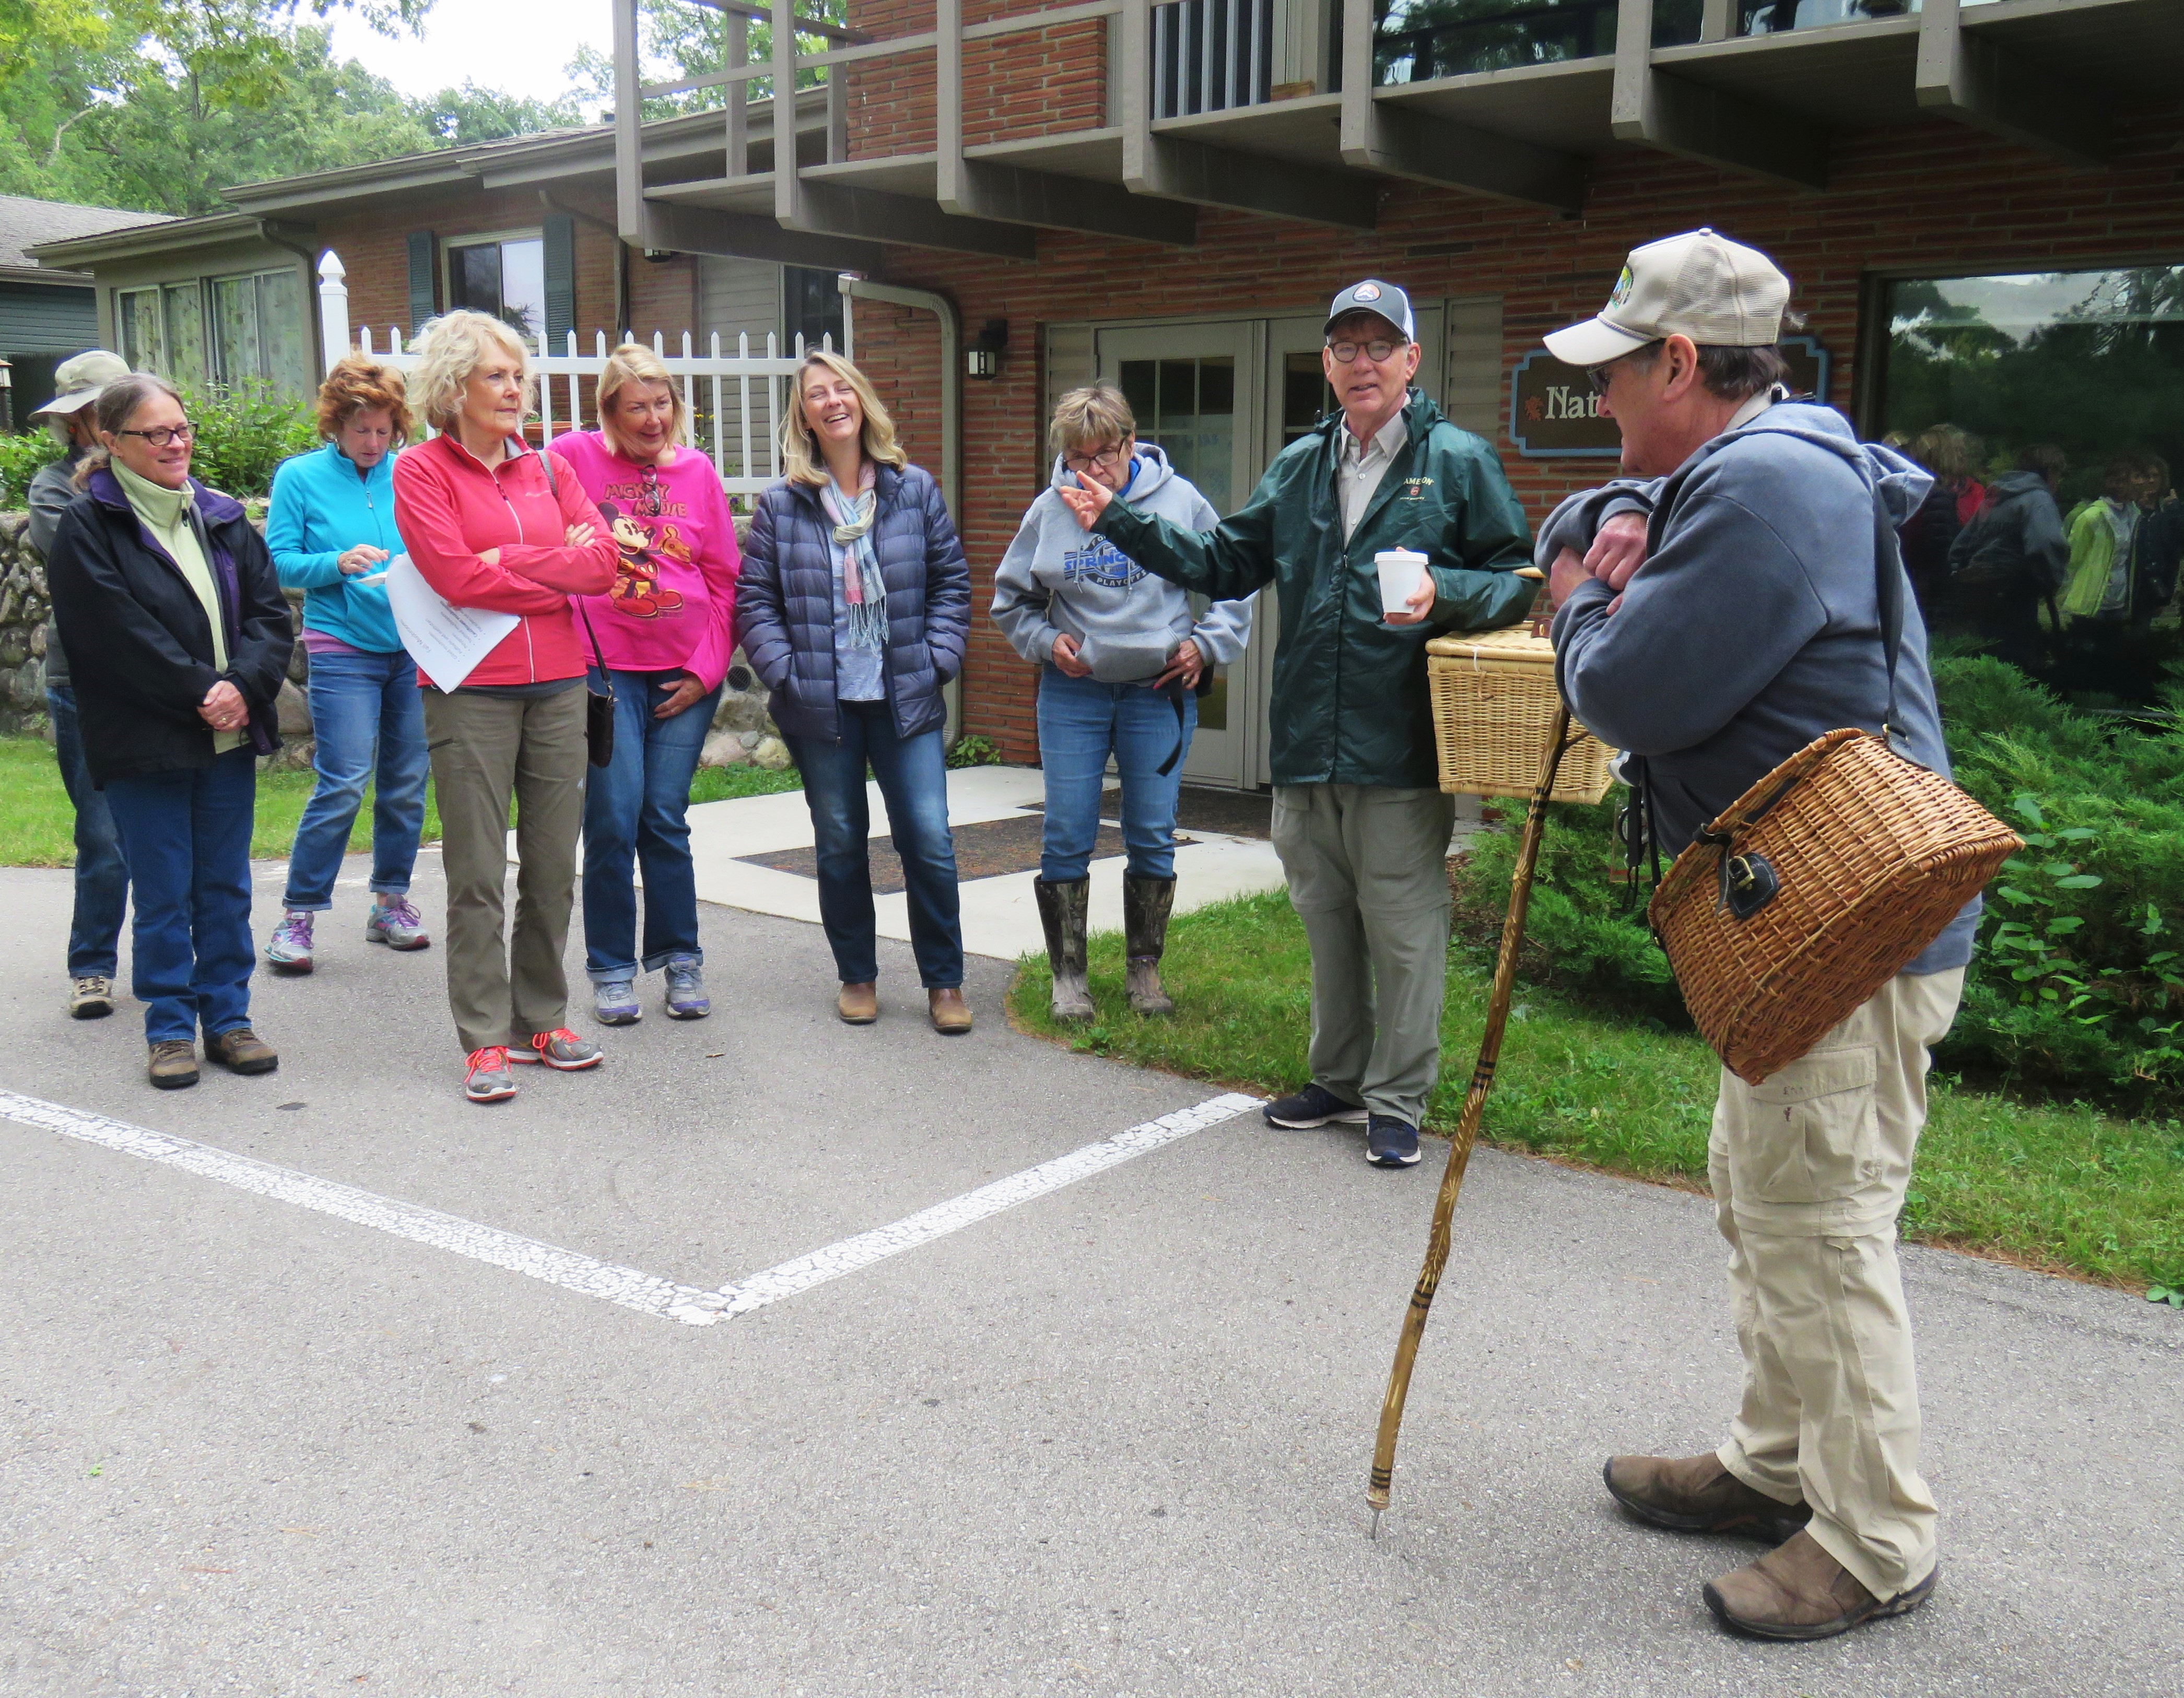 A group of mushroom foragers stands outside of a nature center talking.